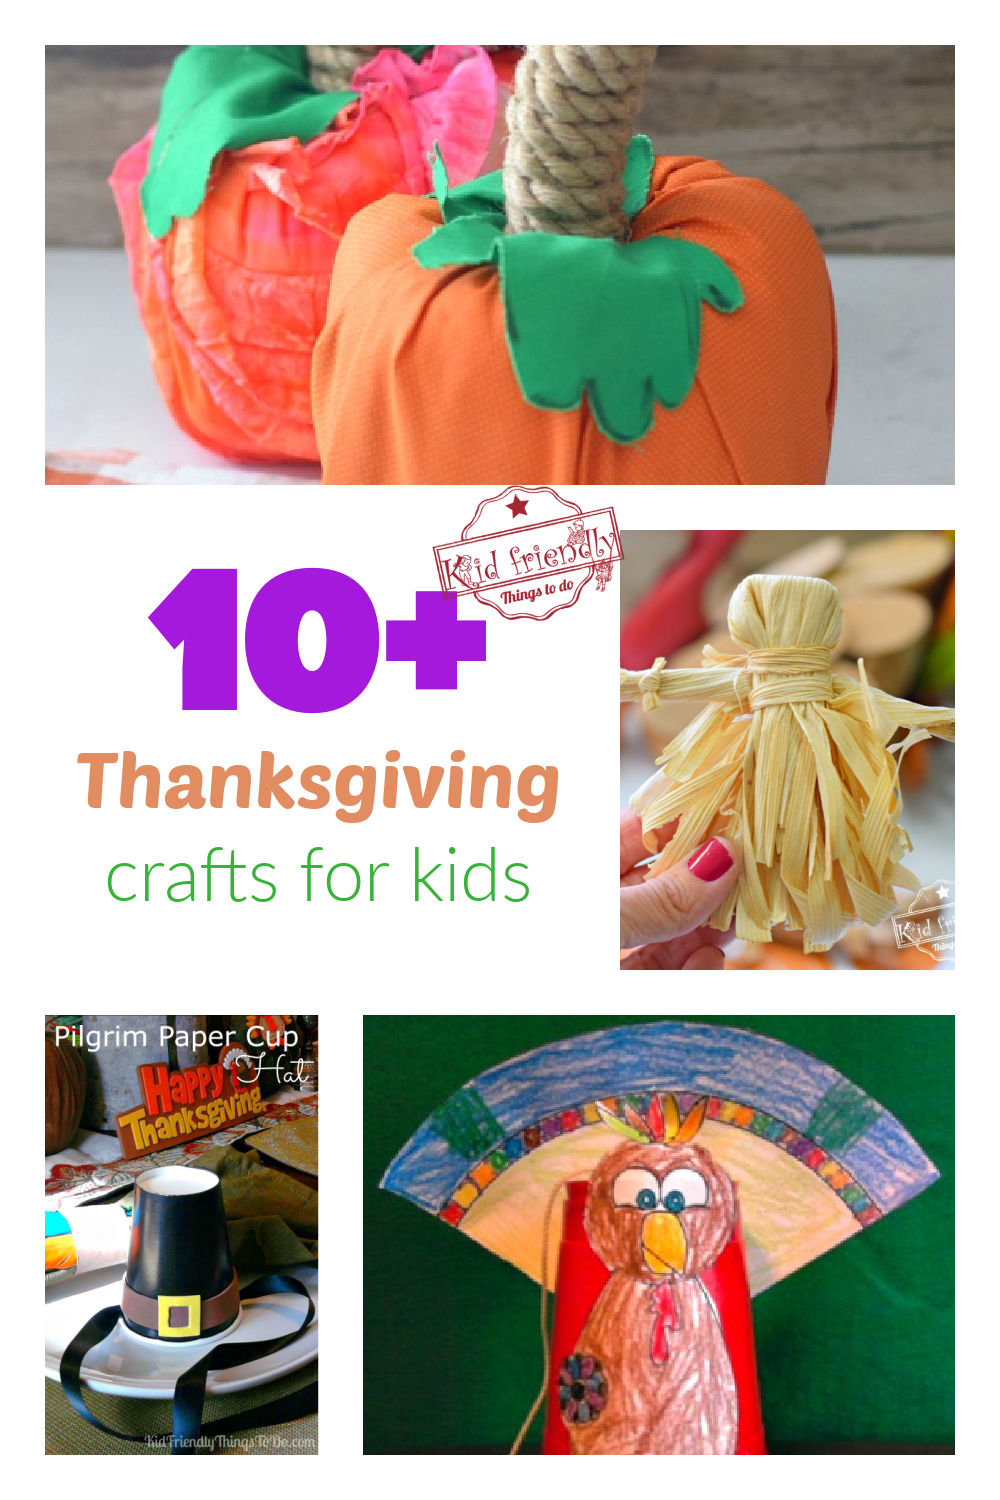 Over 10 Thanksgiving Crafts for Kids | Kid Friendly Things To Do